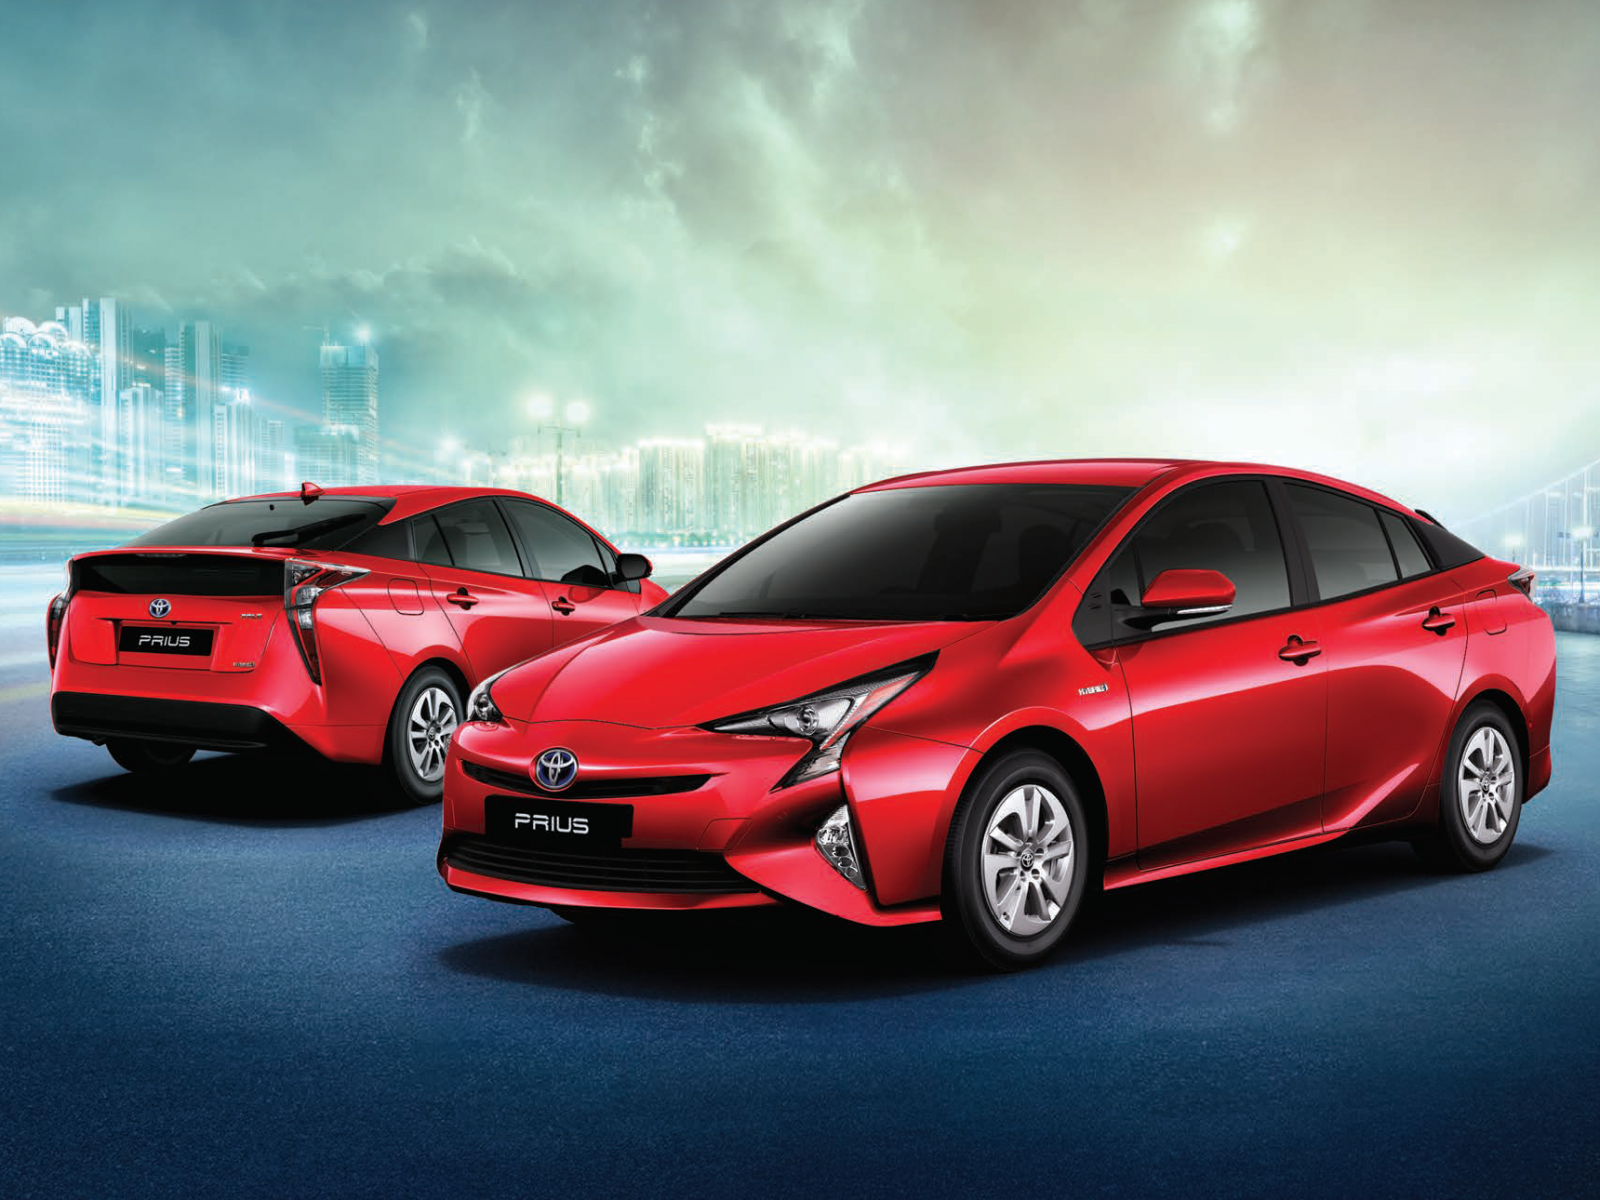 Toyota Prius Wallpapers Free Download